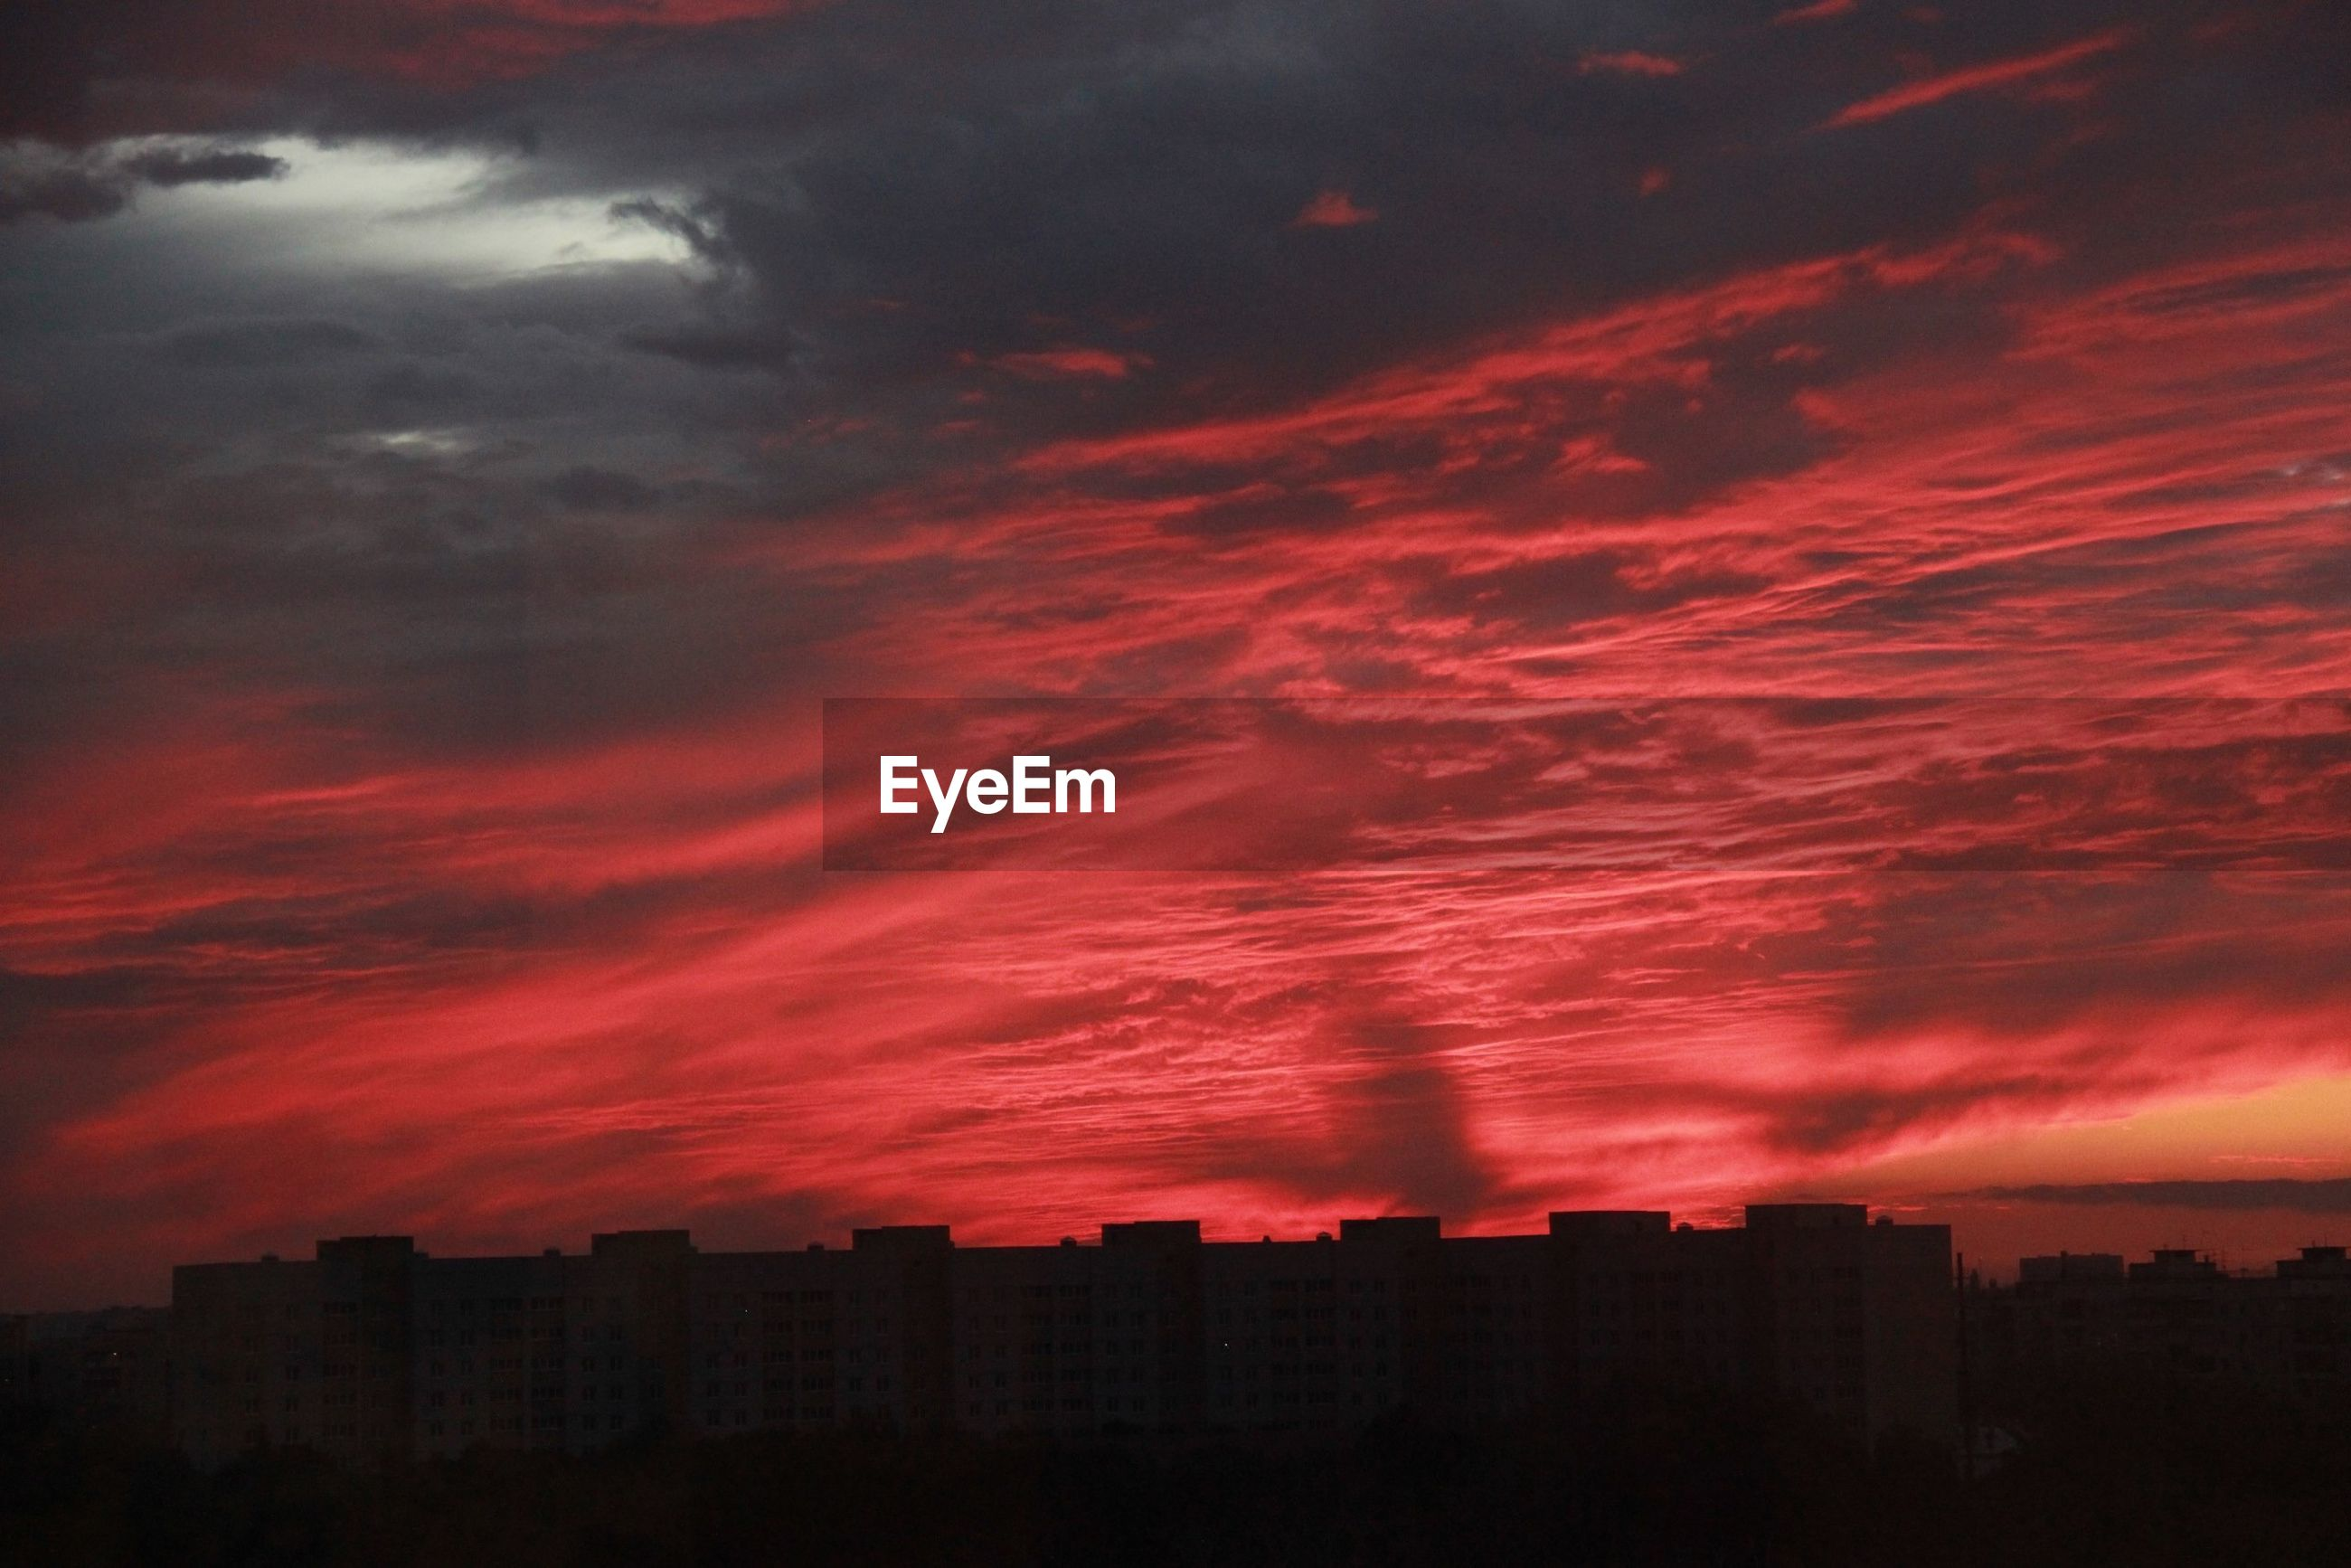 sunset, silhouette, architecture, built structure, building exterior, sky, orange color, cloud - sky, building, scenics, city, beauty in nature, cloud, red, nature, outdoors, dramatic sky, majestic, no people, urban skyline, cloudy, tranquility, residential district, outline